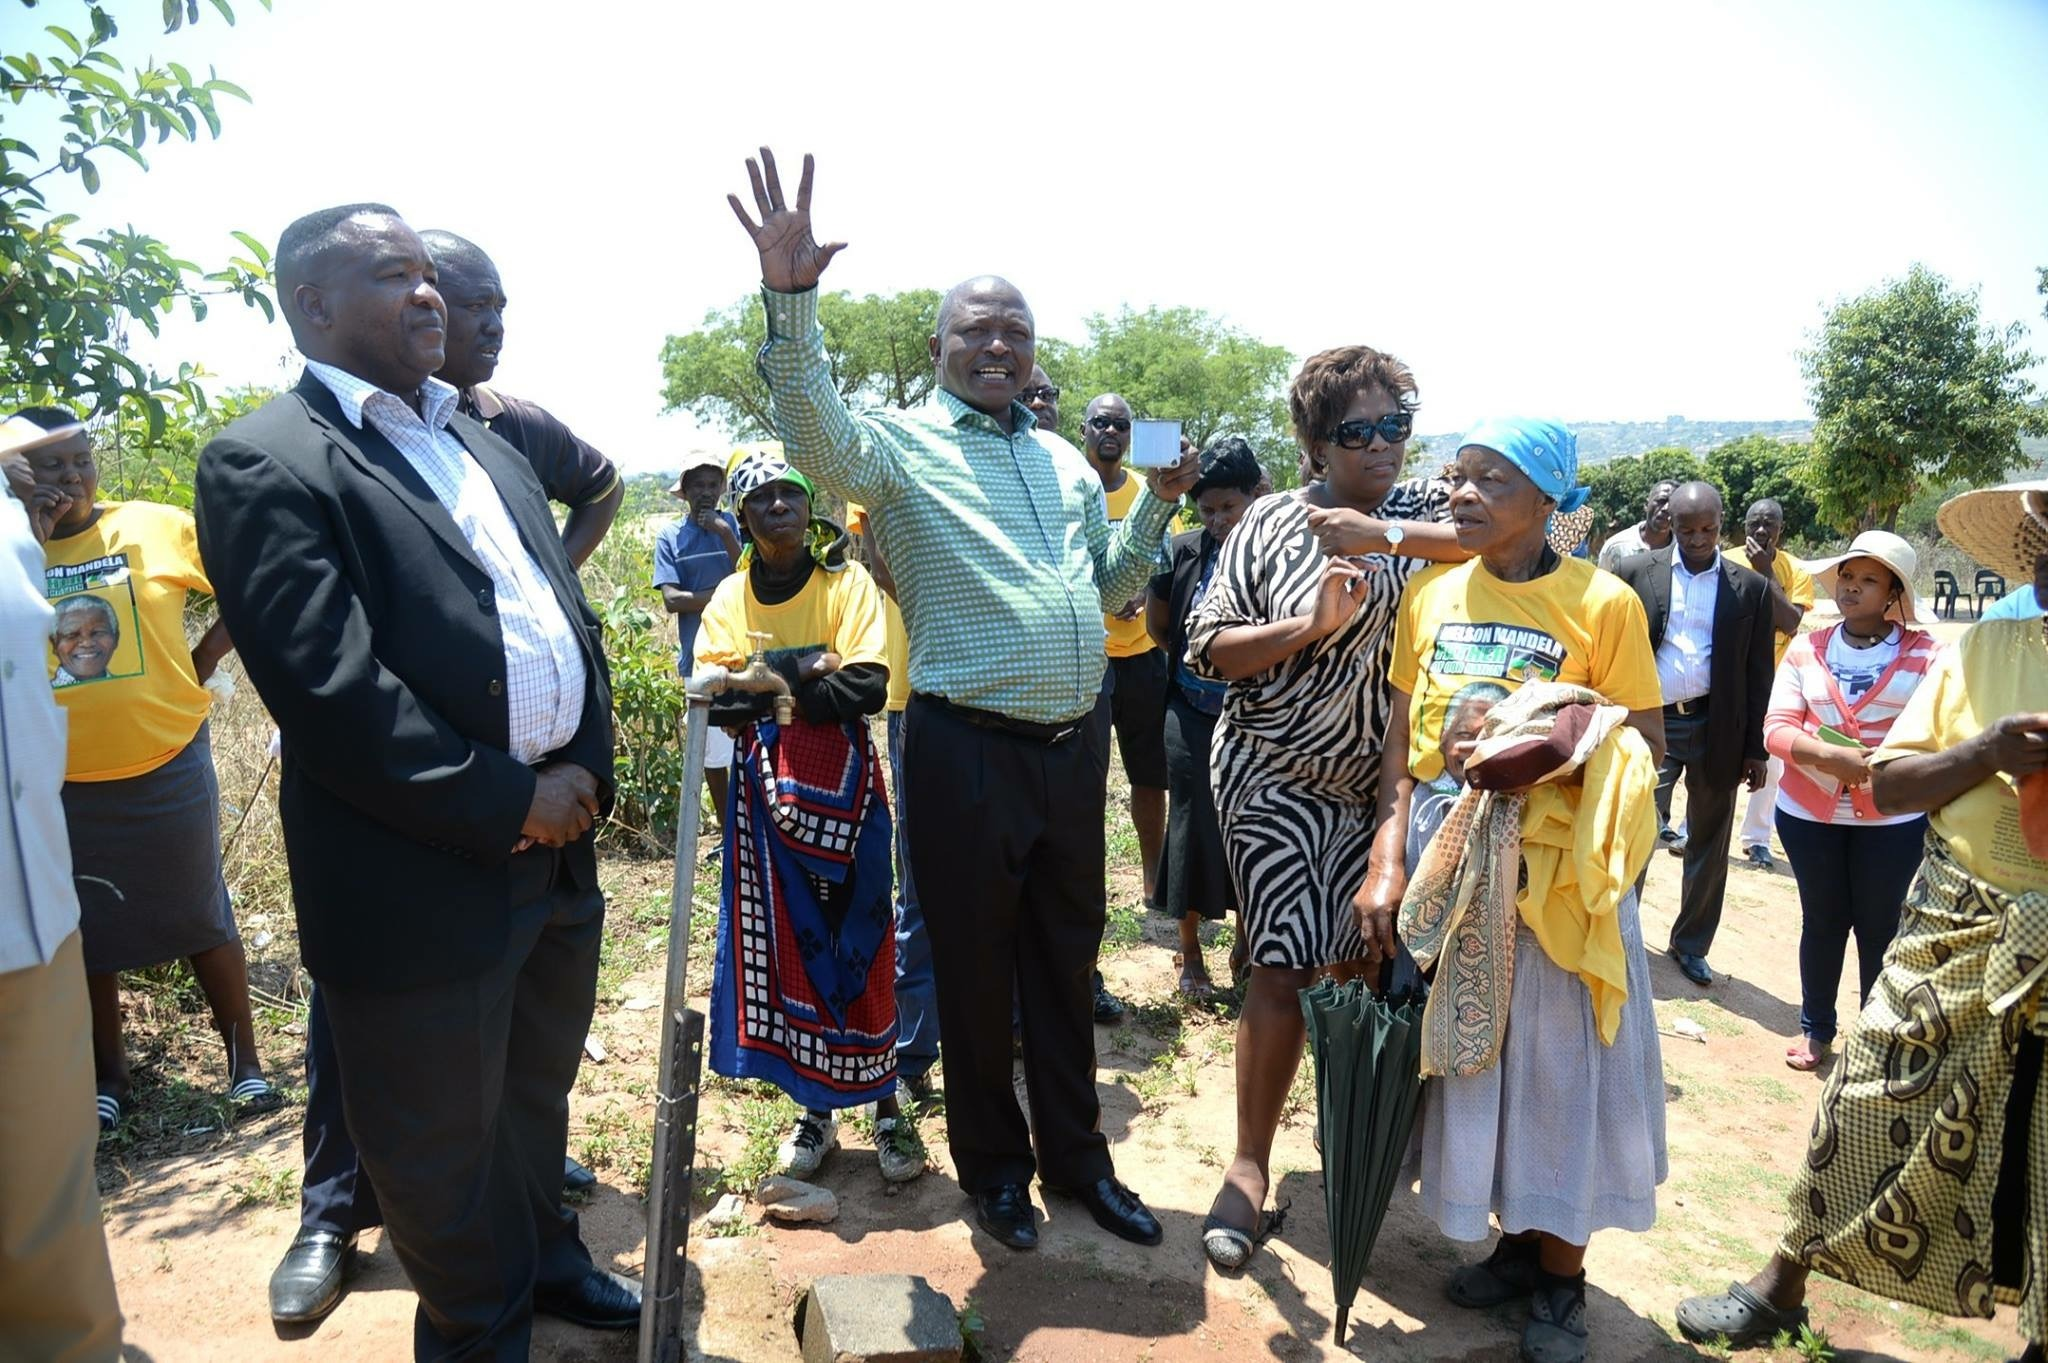 DD Mabuza is sure he'll be elected in December